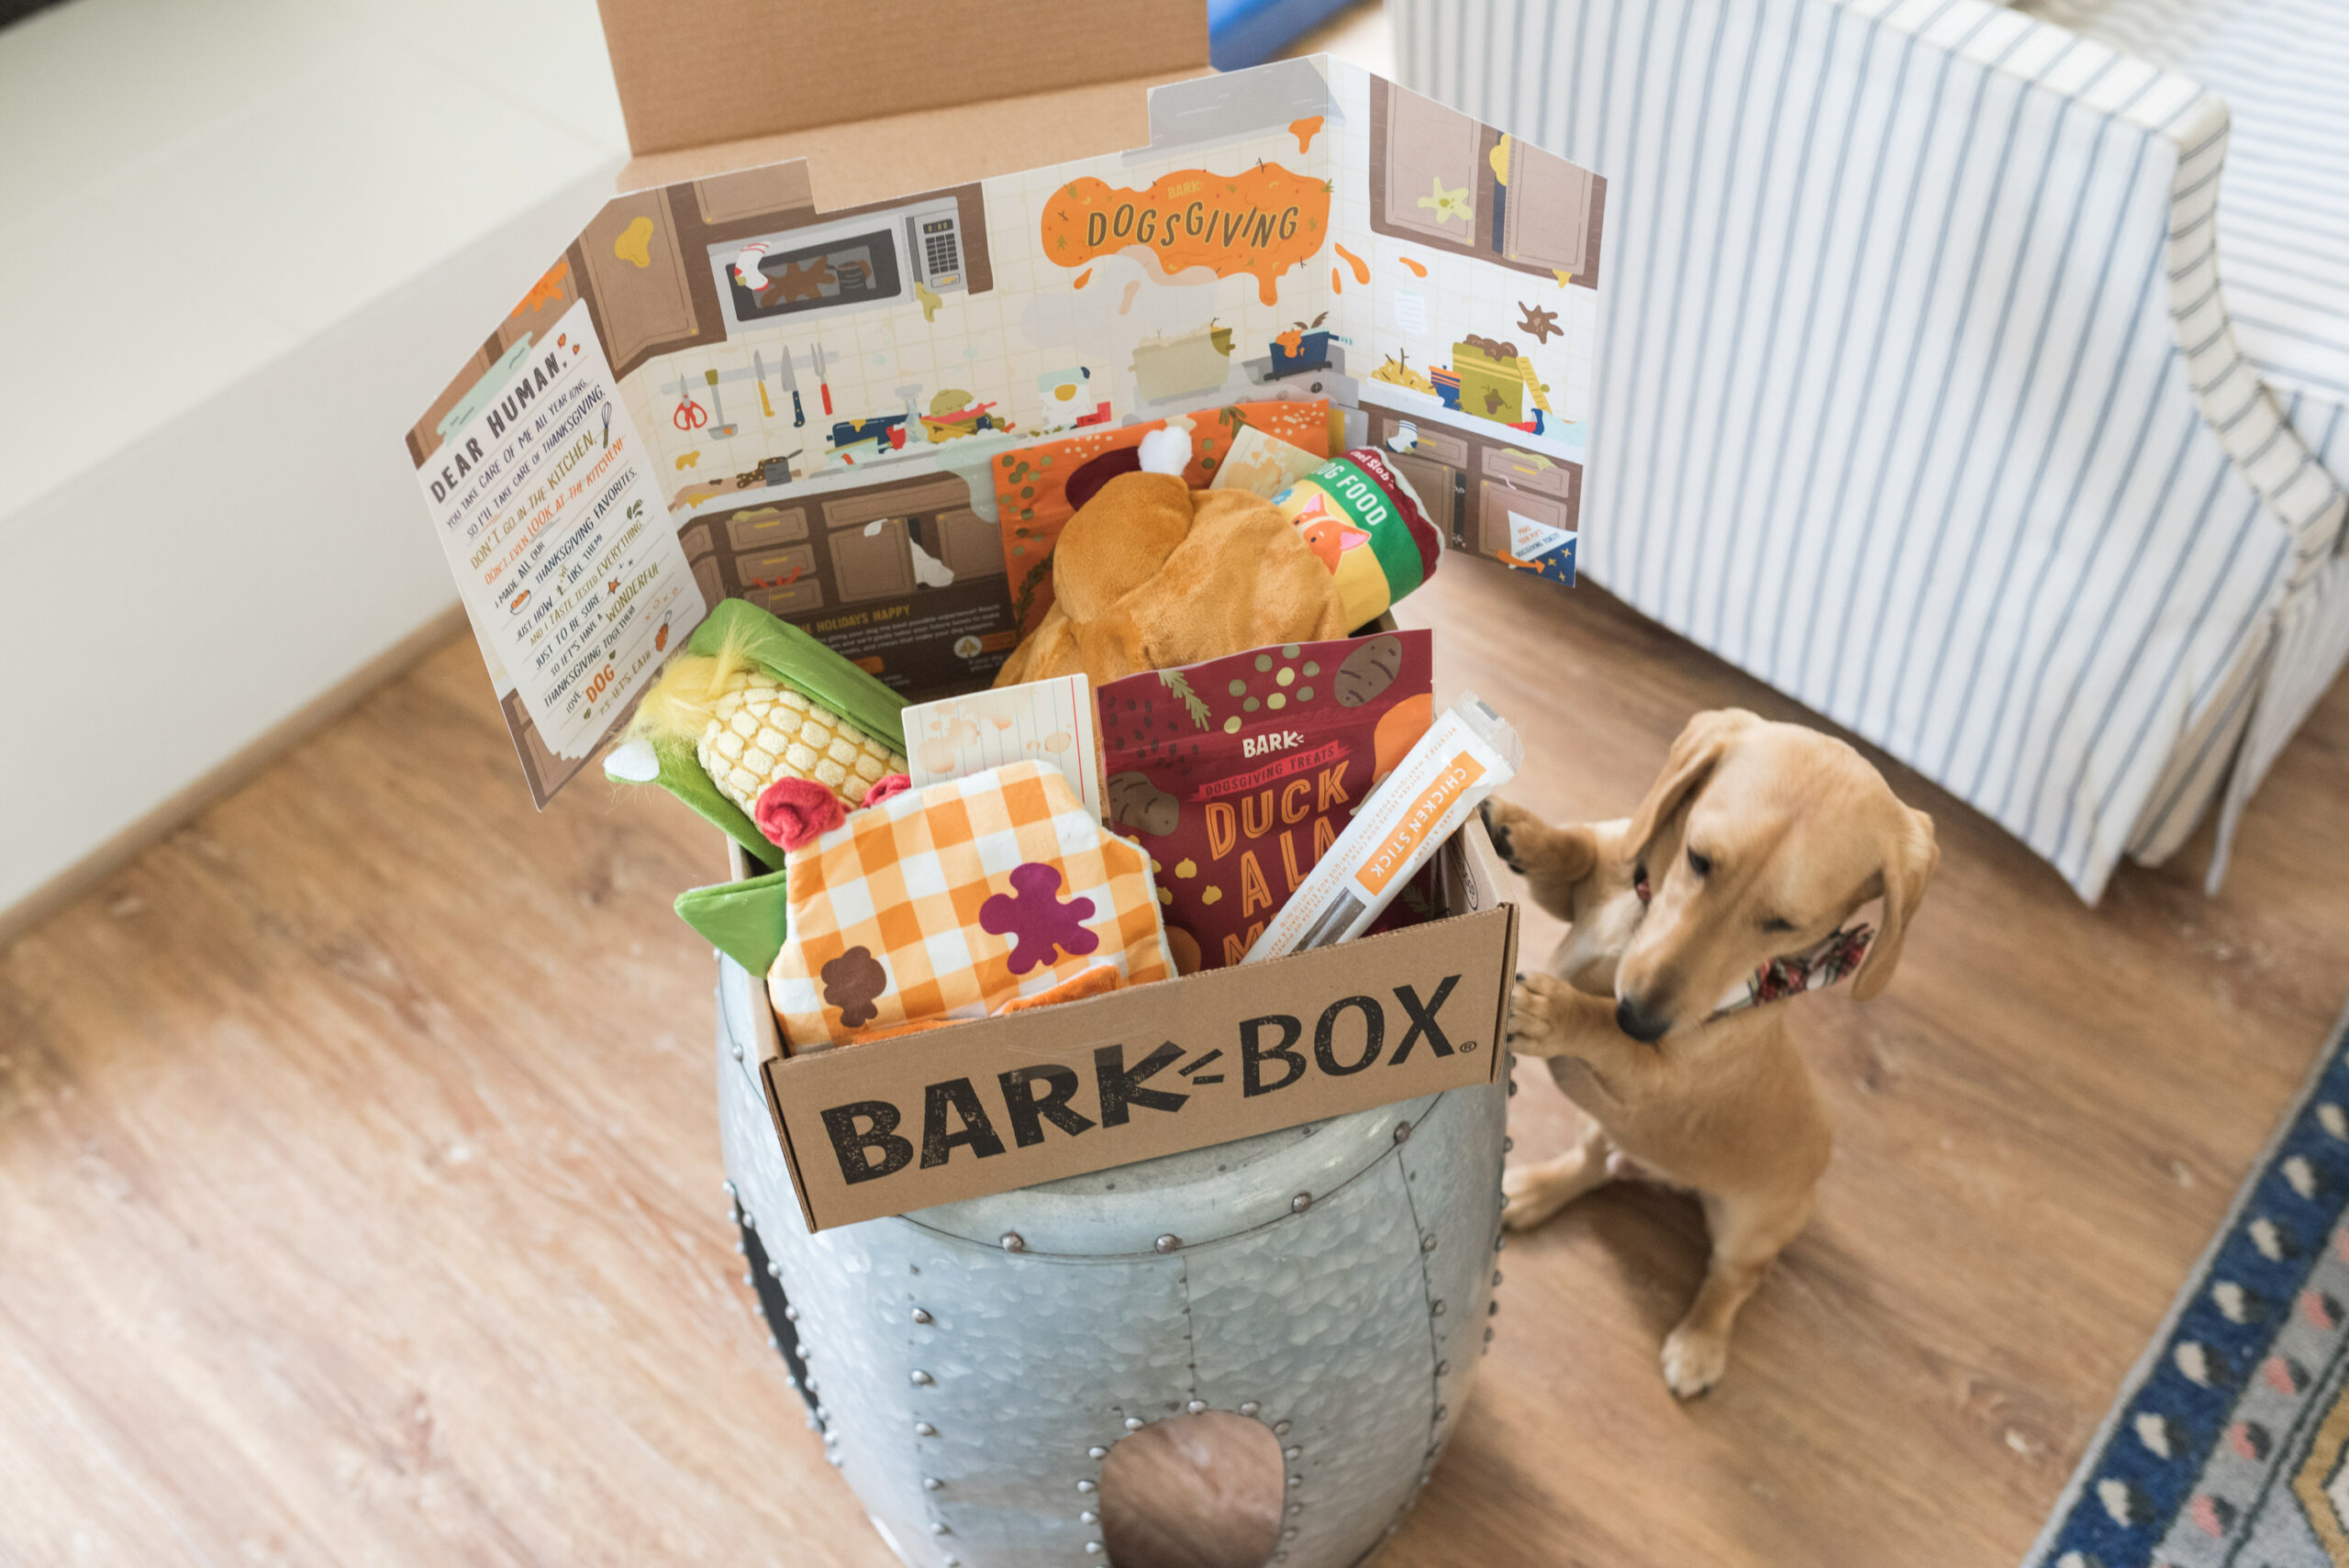 Barkbox Toys by popular Houston lifestyle blog, Fancy Ashley: image of a dog standing next to a Barkbox filled with dog toys and treats.